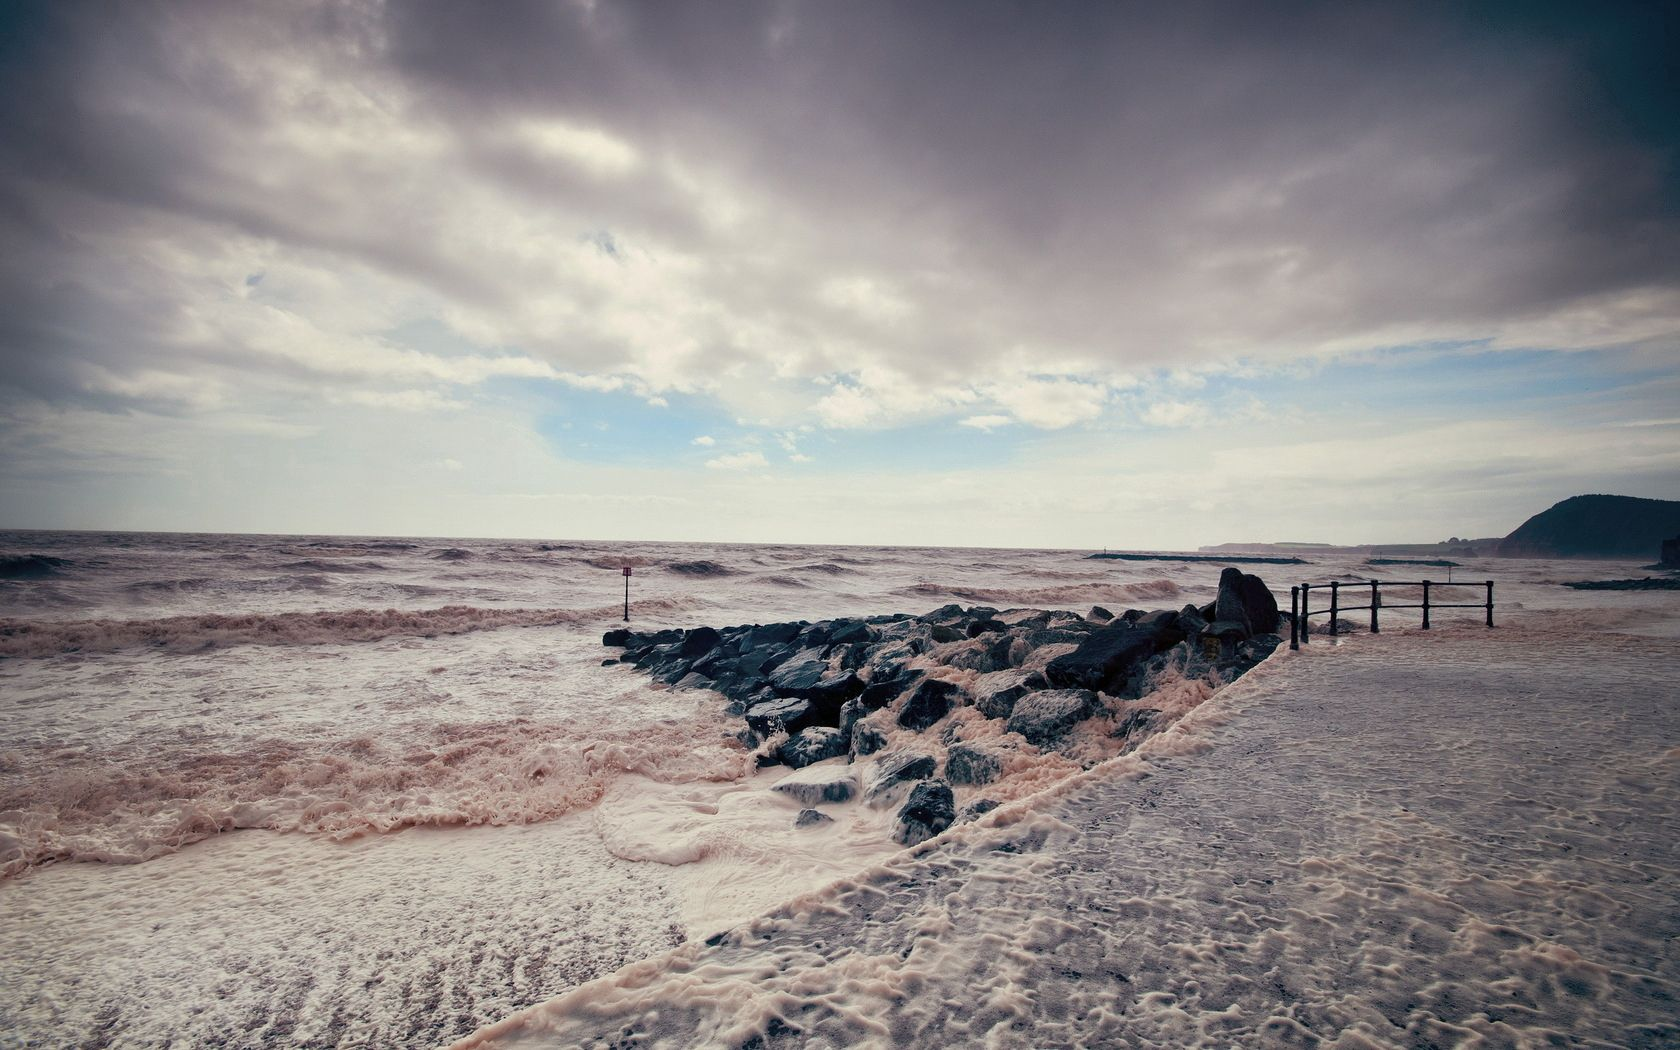 109062 download wallpaper Nature, Sea, Storm, Pier, Water, Stones, Colors, Color screensavers and pictures for free